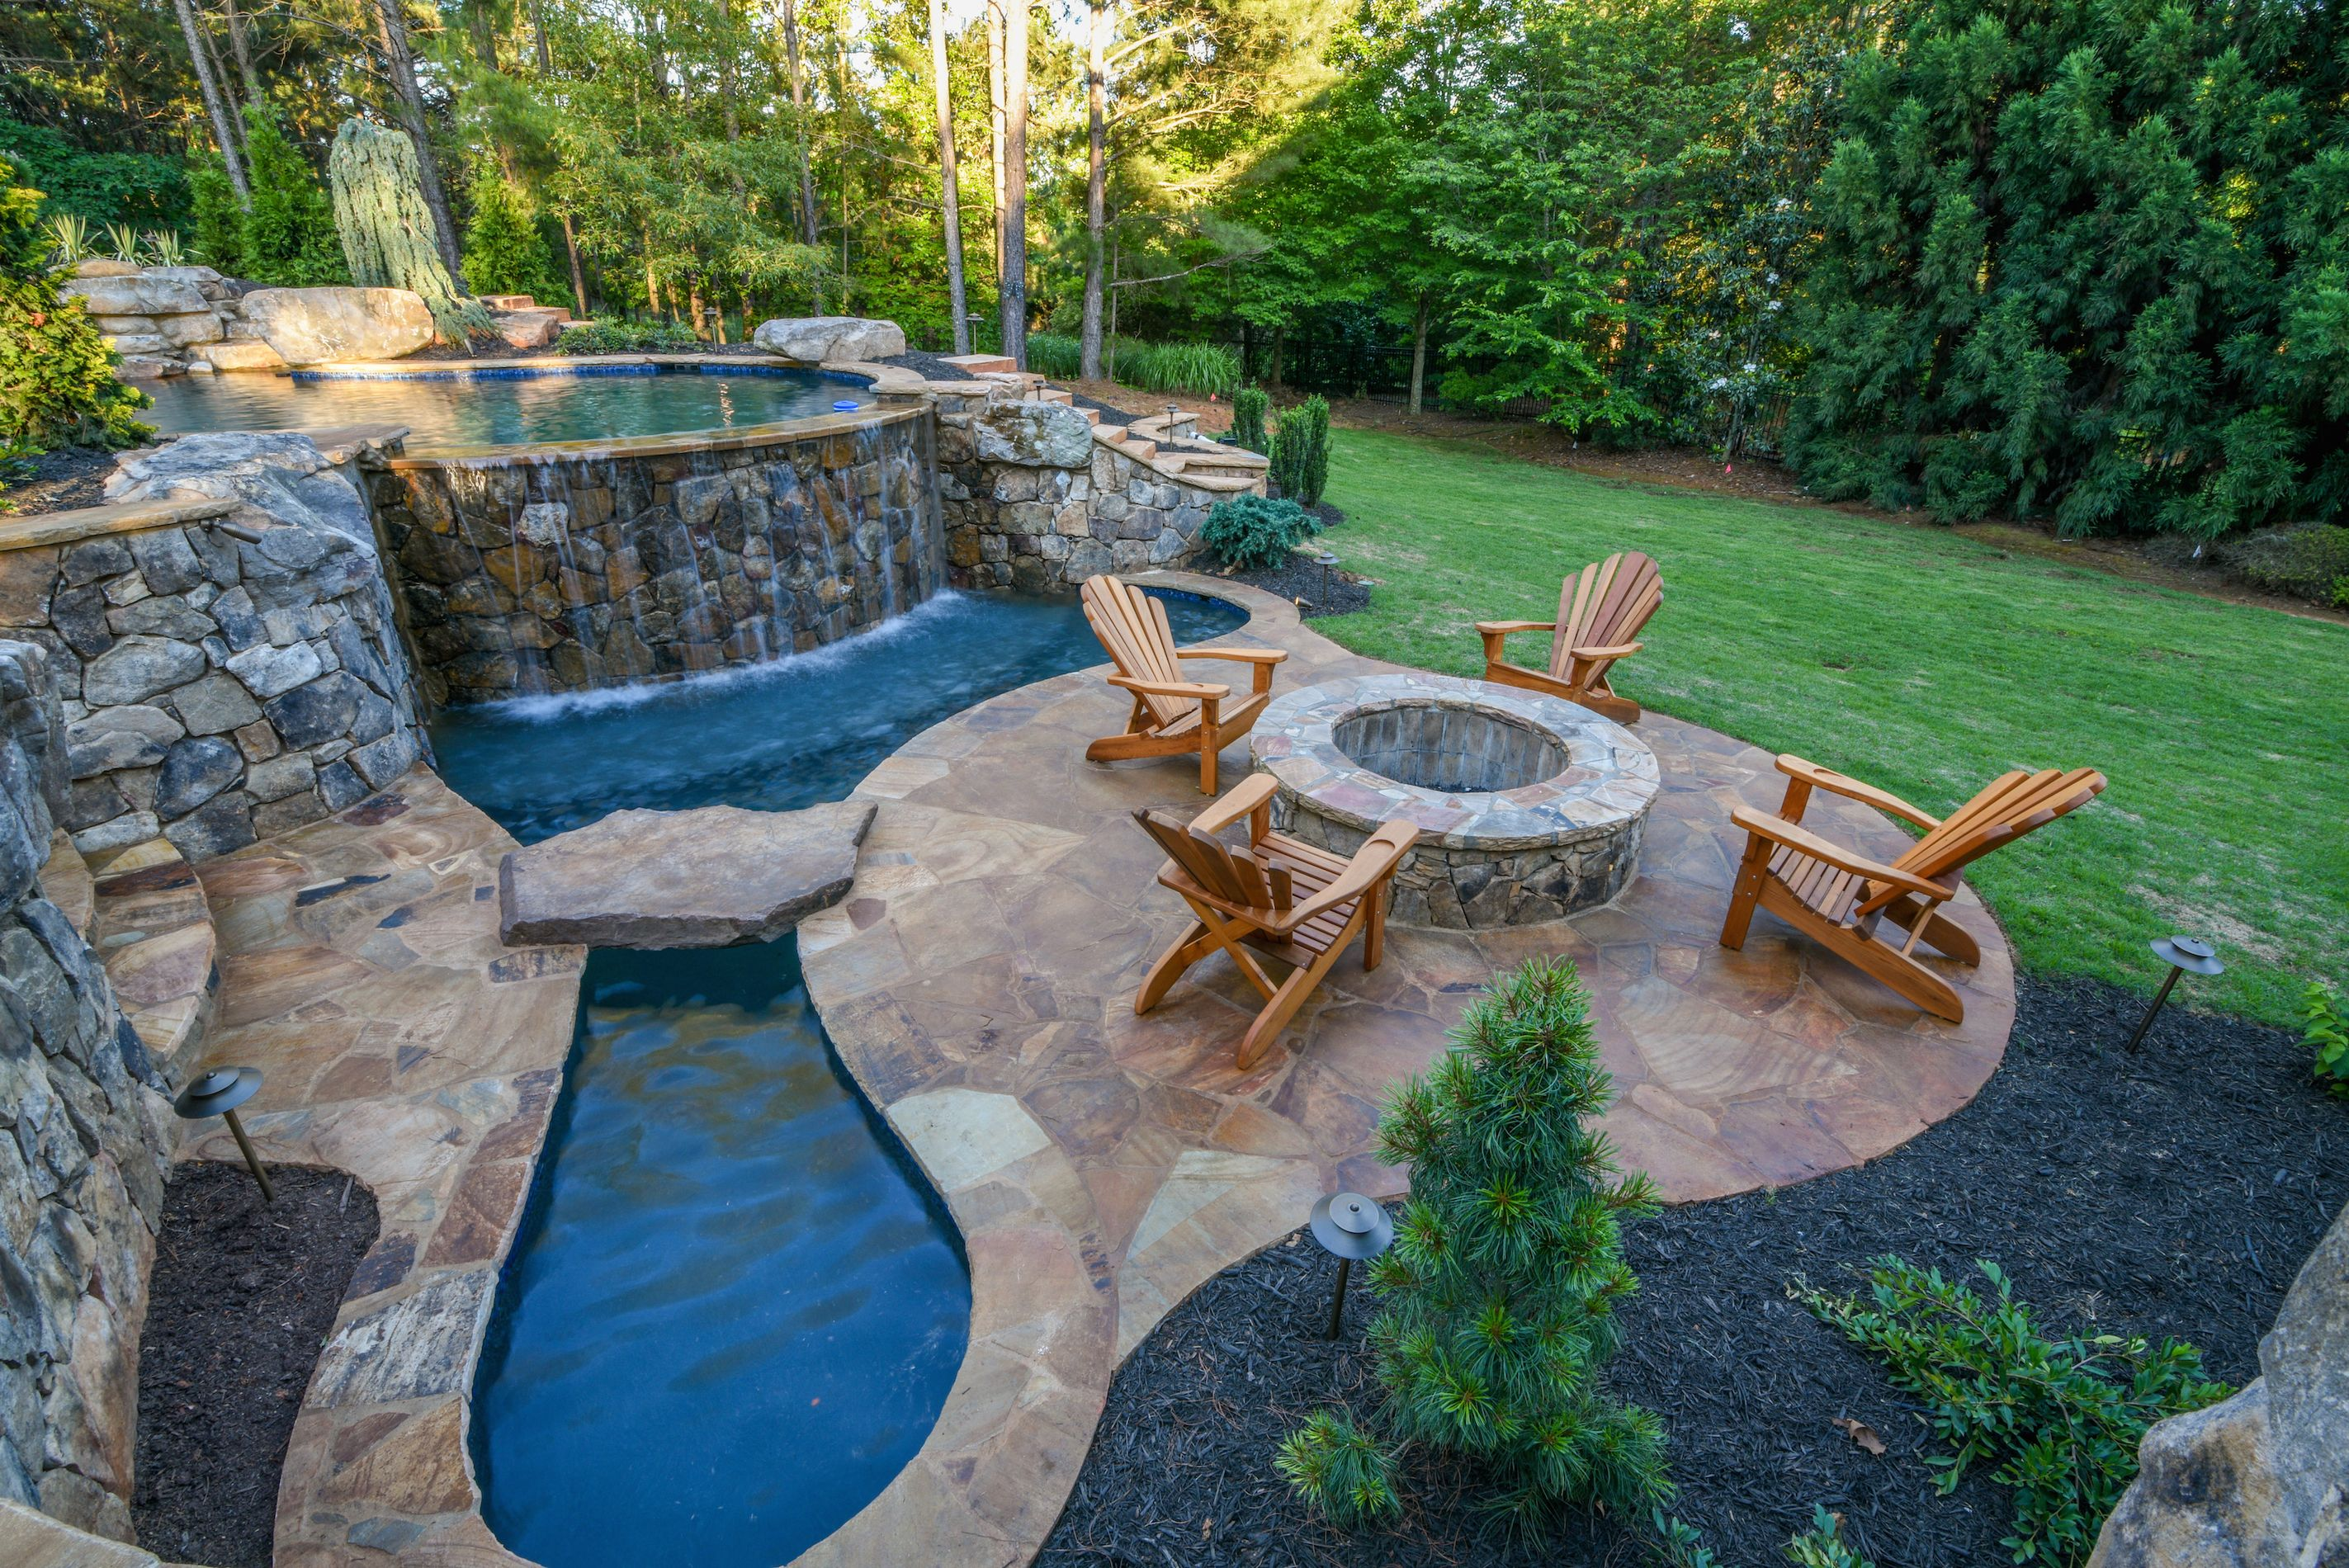 Custom built swimming pool and outdoor living space designed and built by Georgia Classic Pool.